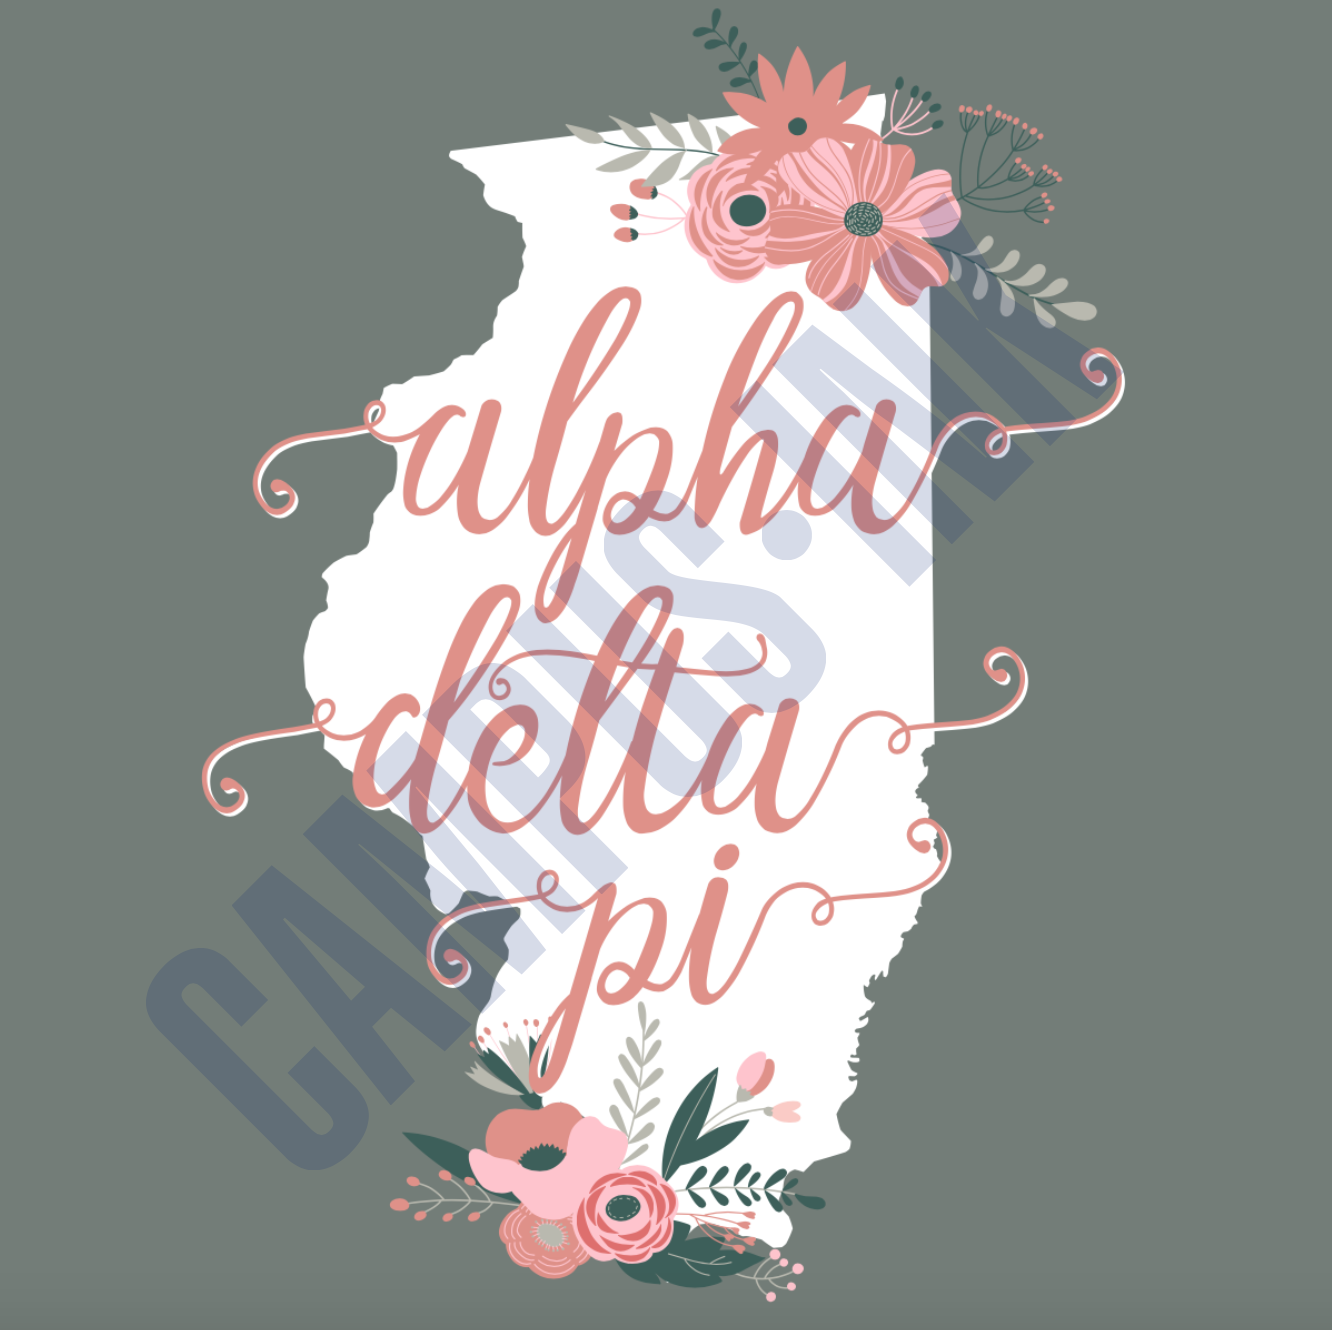 Illinois ADPi Flowers